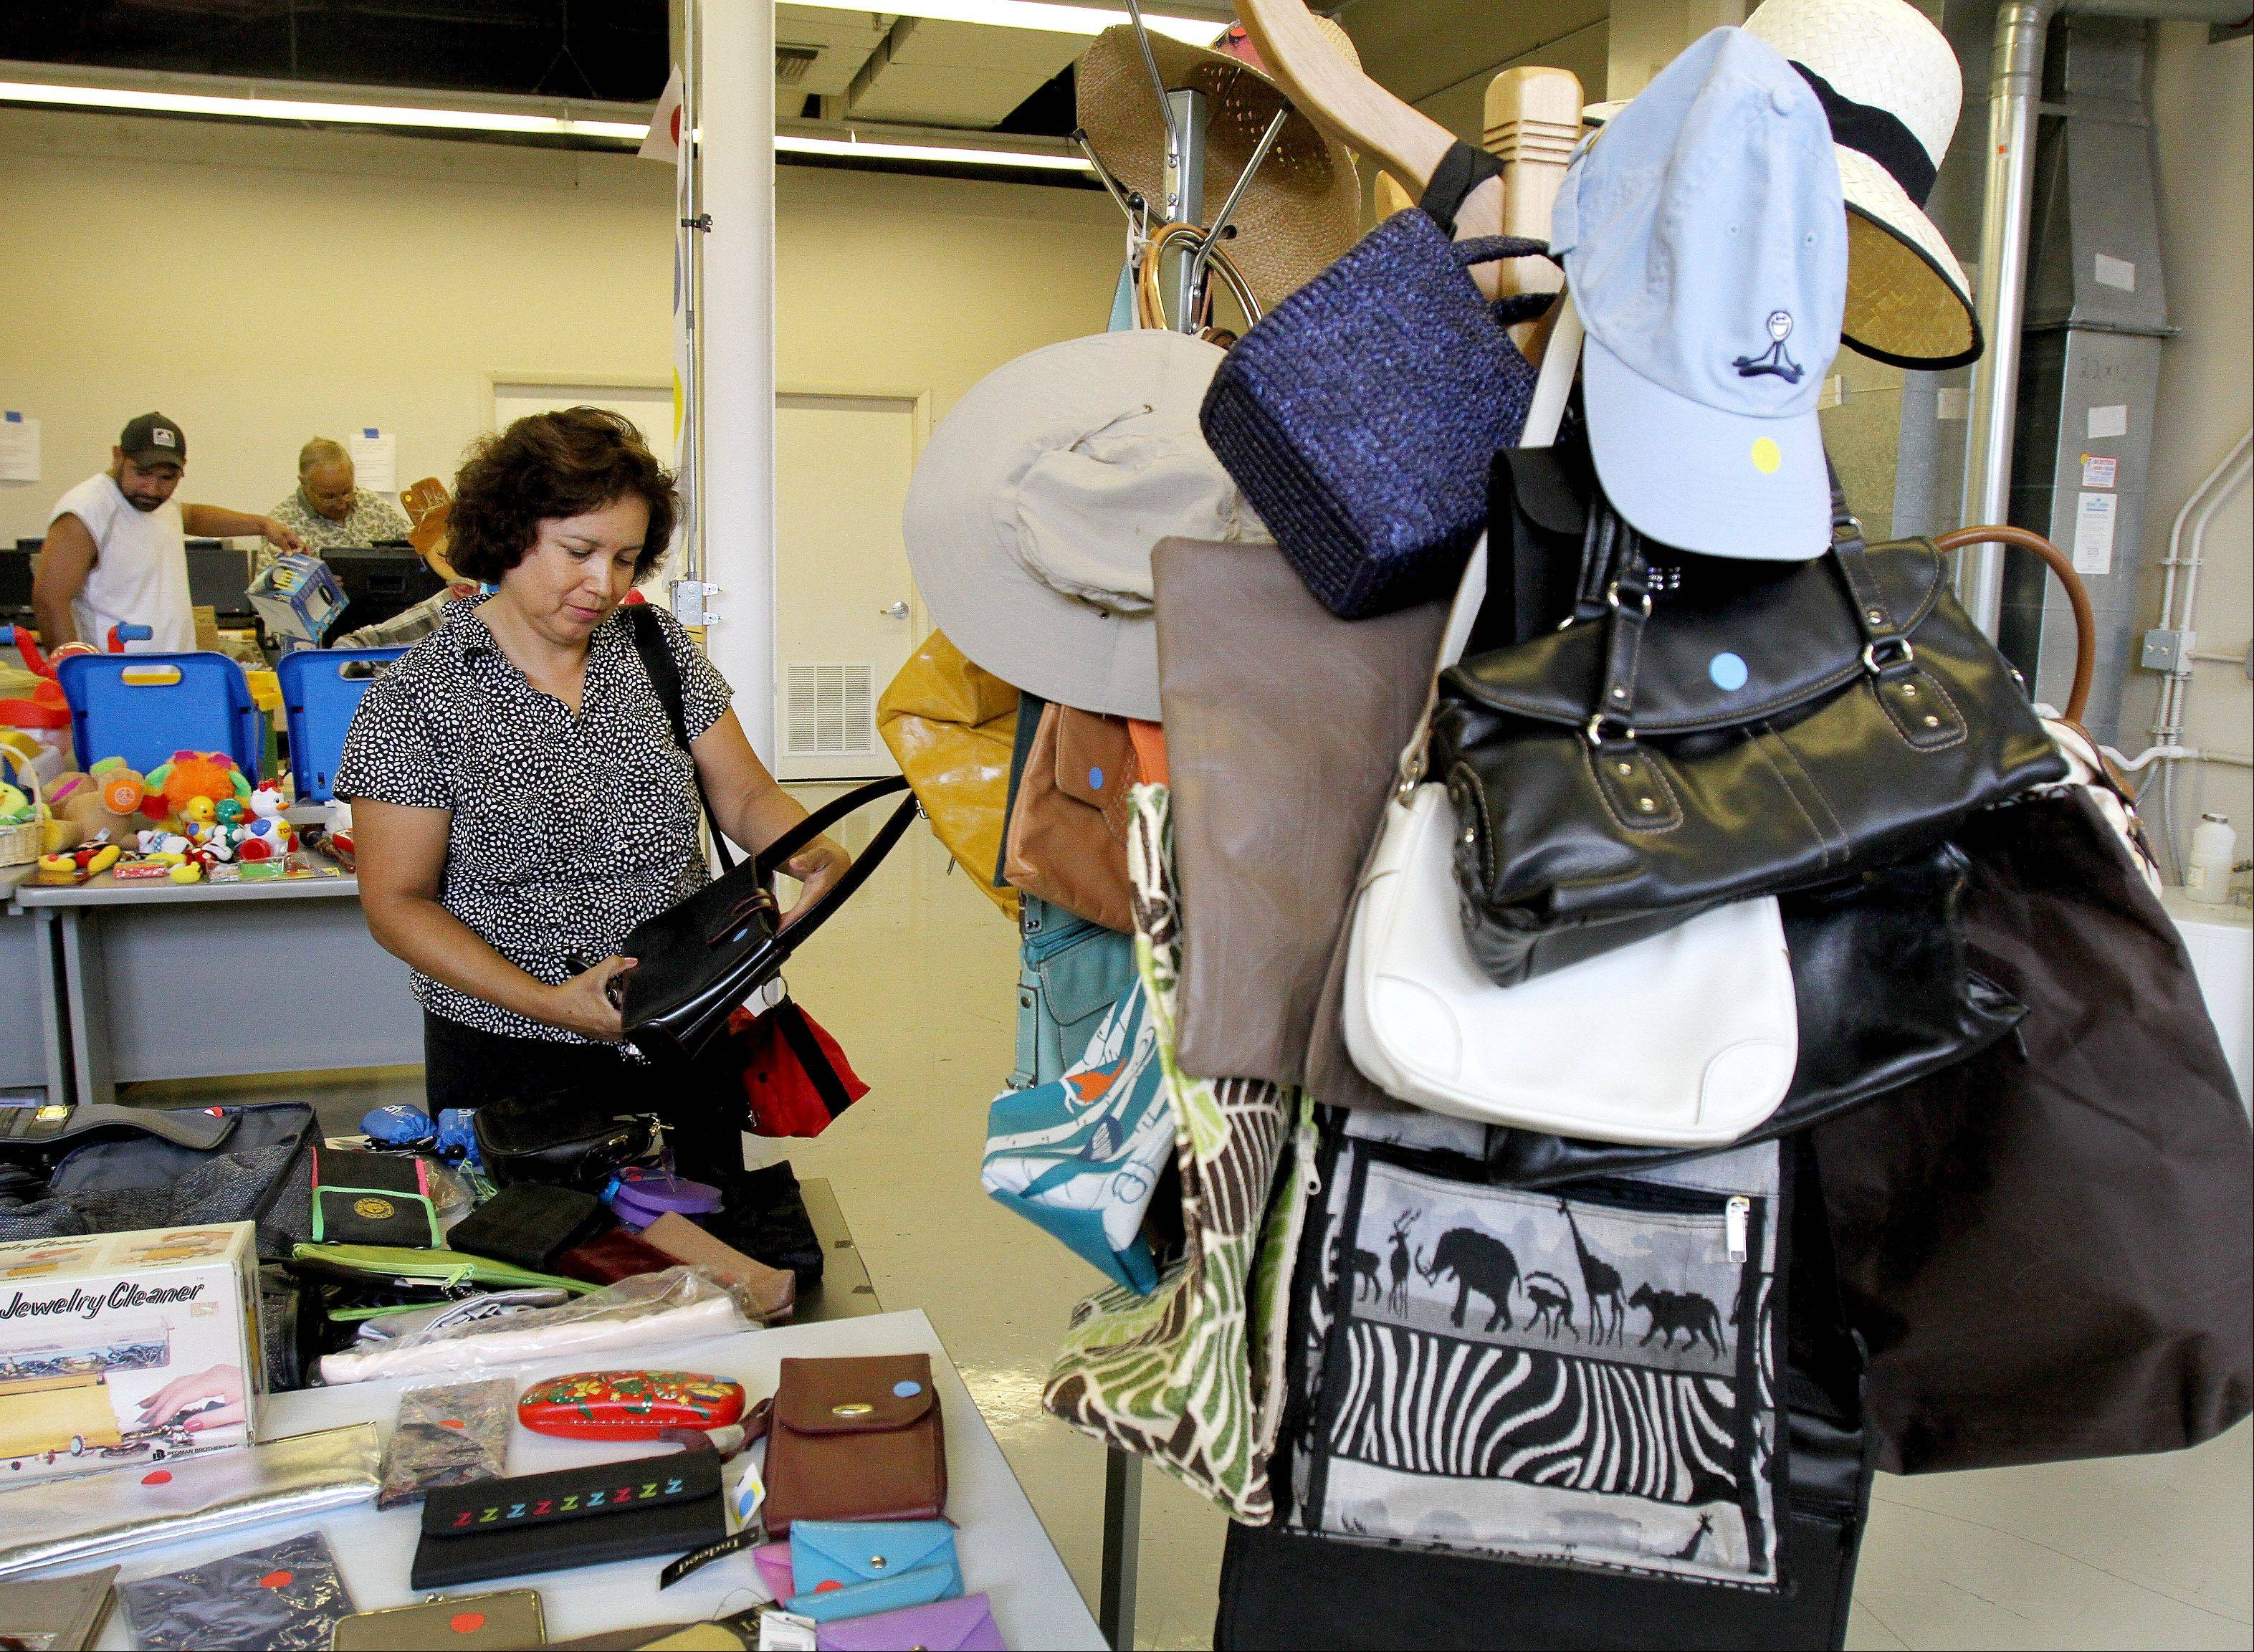 Elsa Maust of Wheaton takes a look at some items for sale at Allured Business Media in Carol Stream.